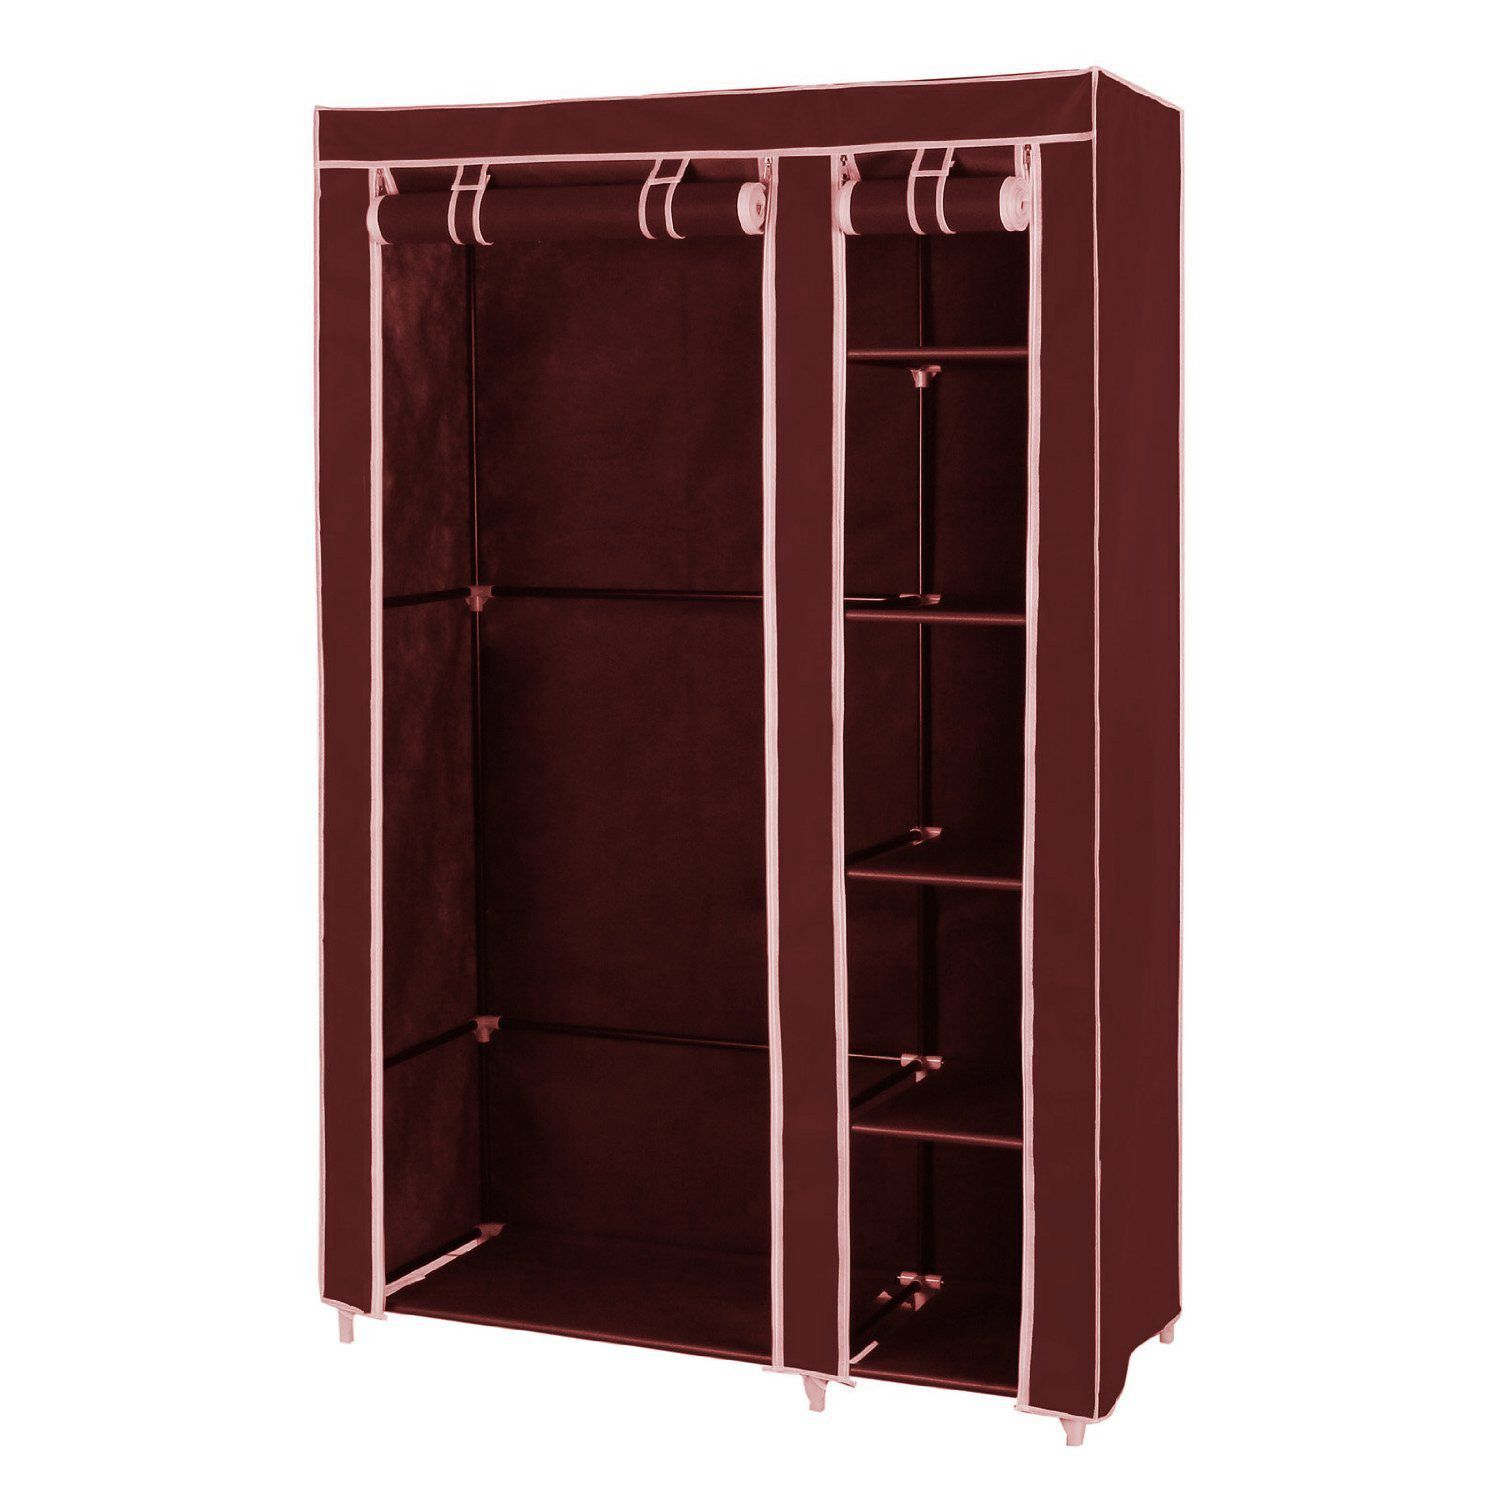 House of Quirk Fancy & Portable Foldable Closet Wardrobe Cabinet